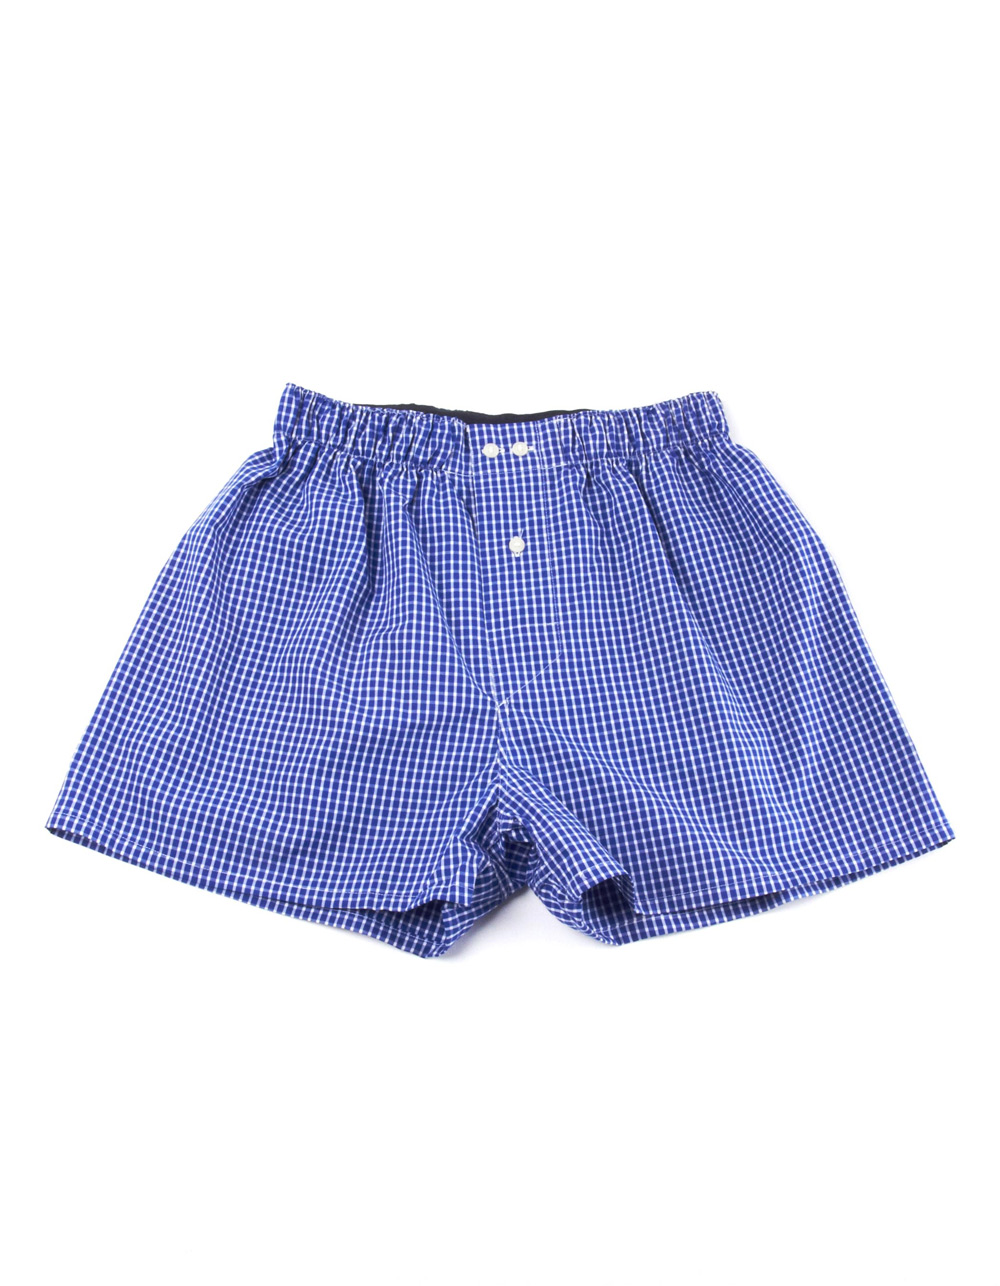 Blue and white micro plain boxer shorts